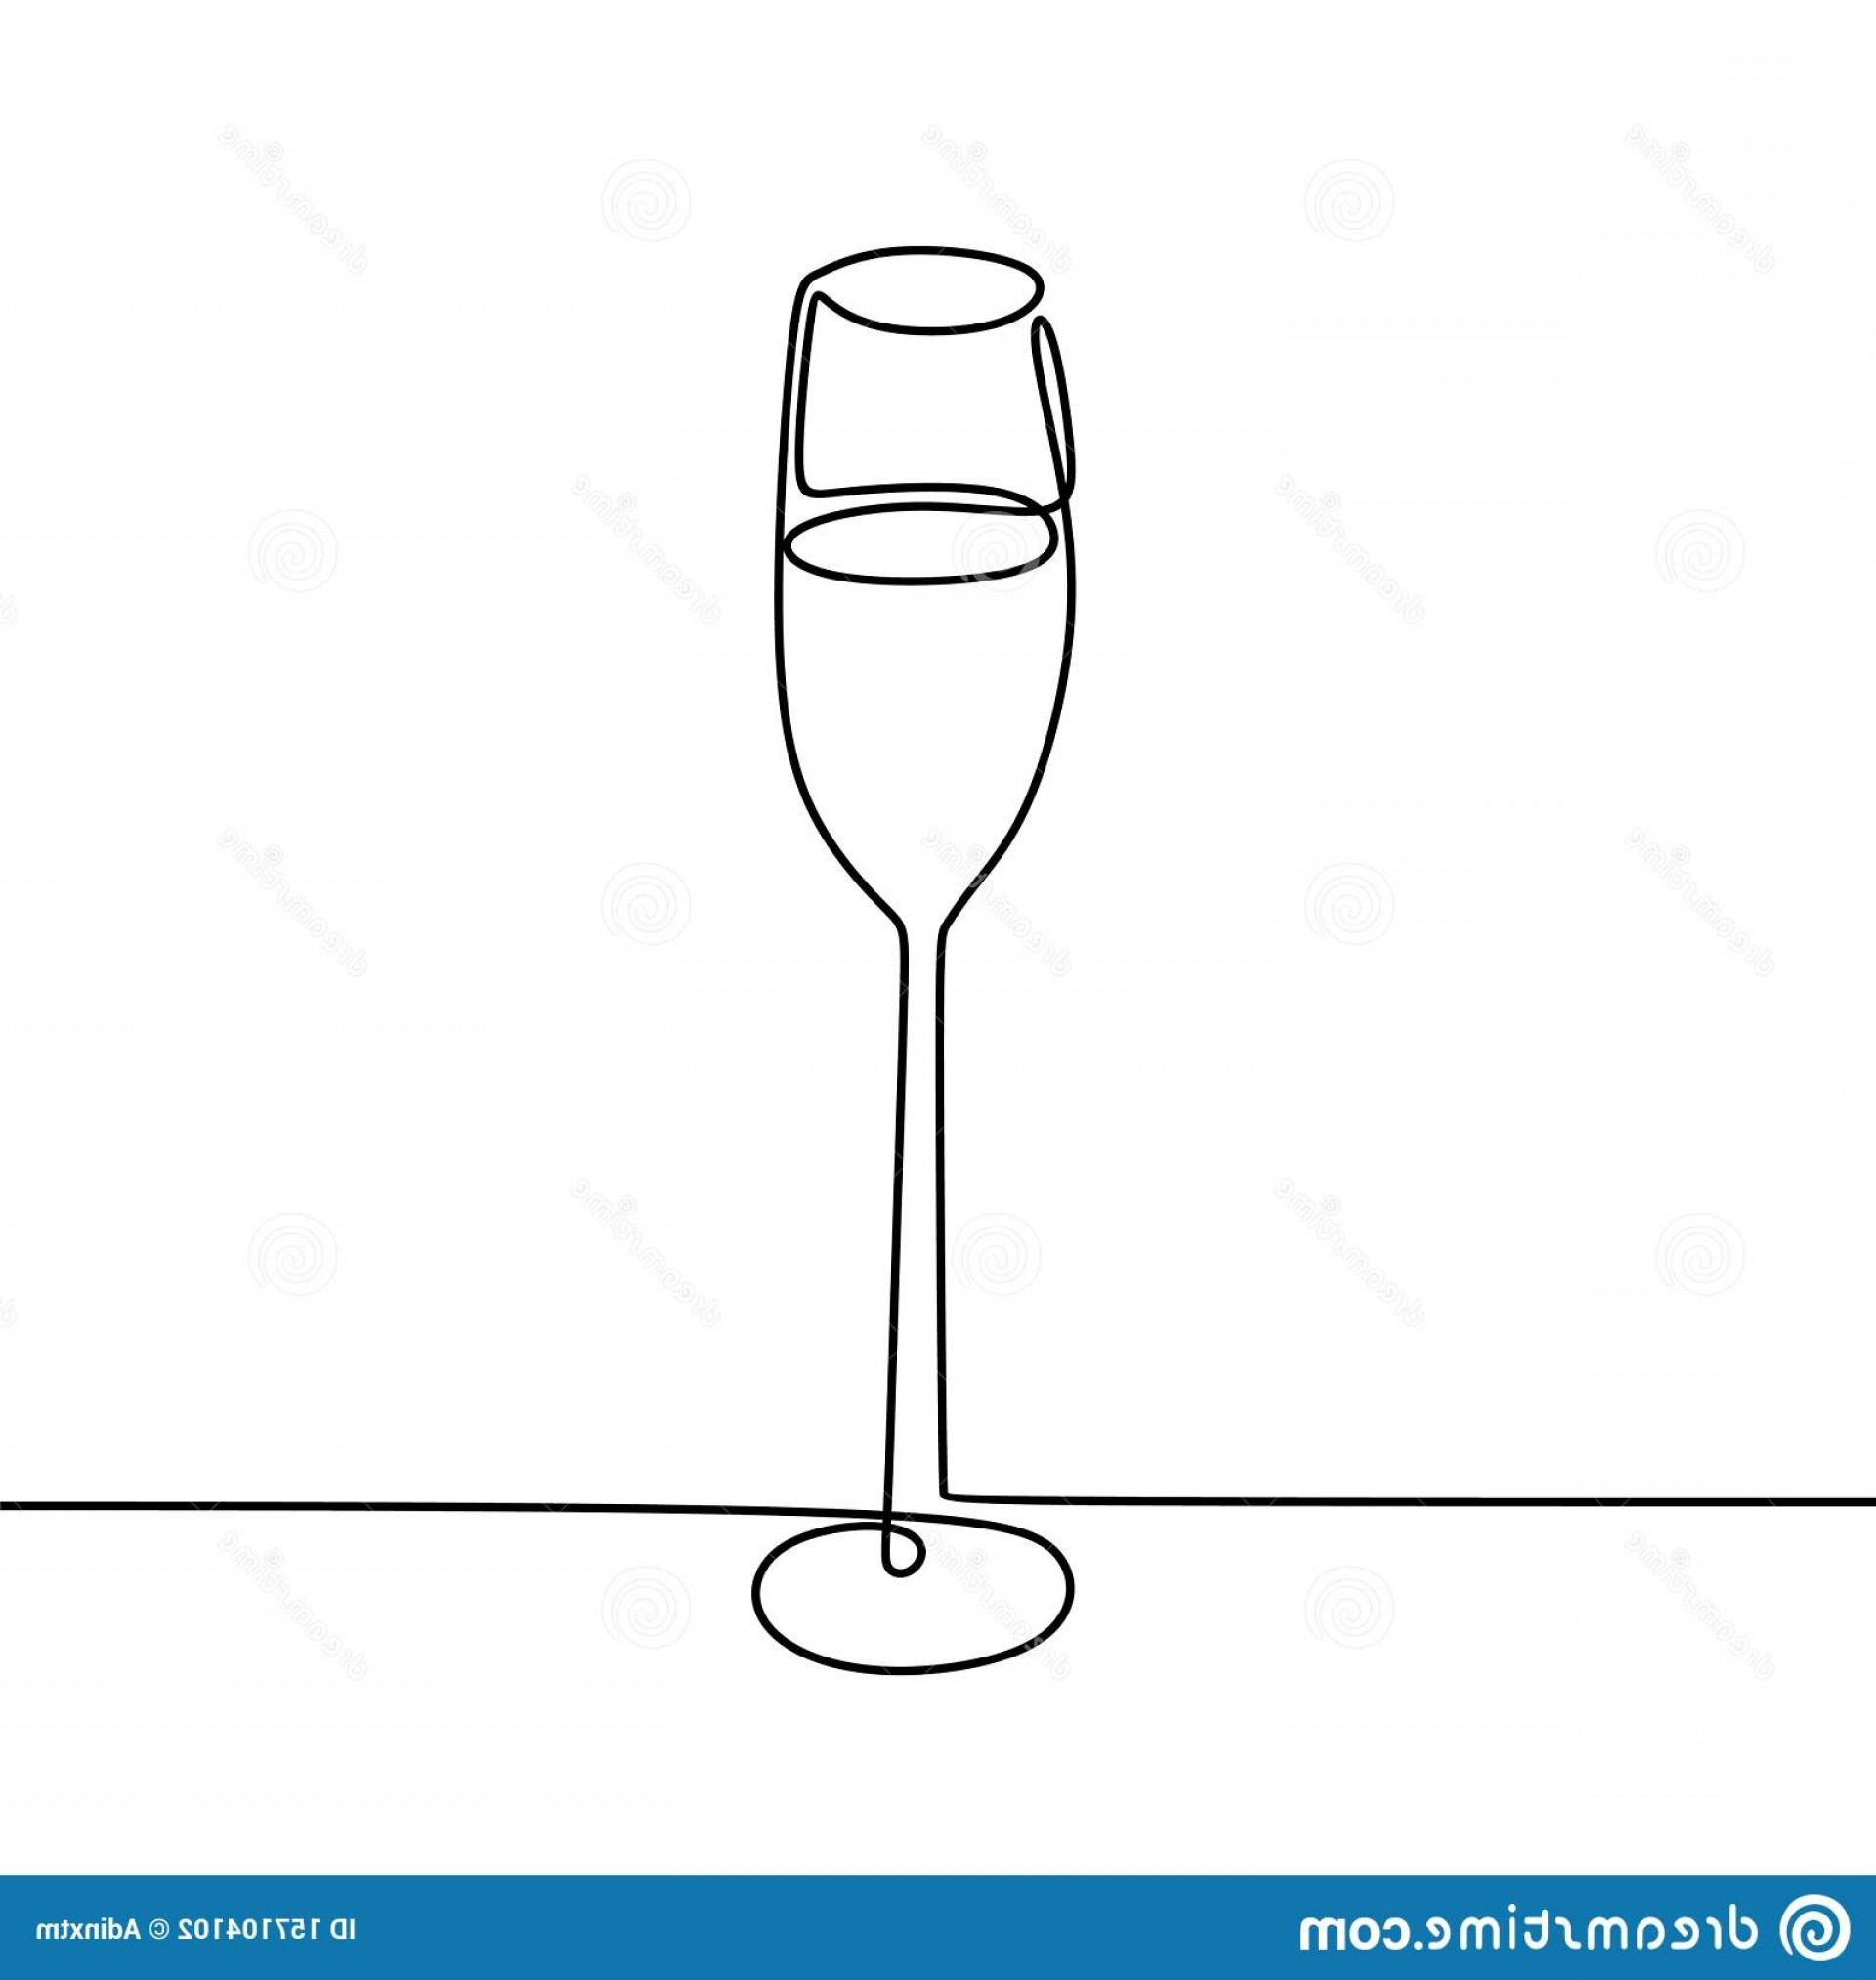 Single Wine Glass Silhouette Vector: Continuous One Line Drawing Wine Glass Isolated White Background Vector Illustration Minimalism Design Beverage Element Image